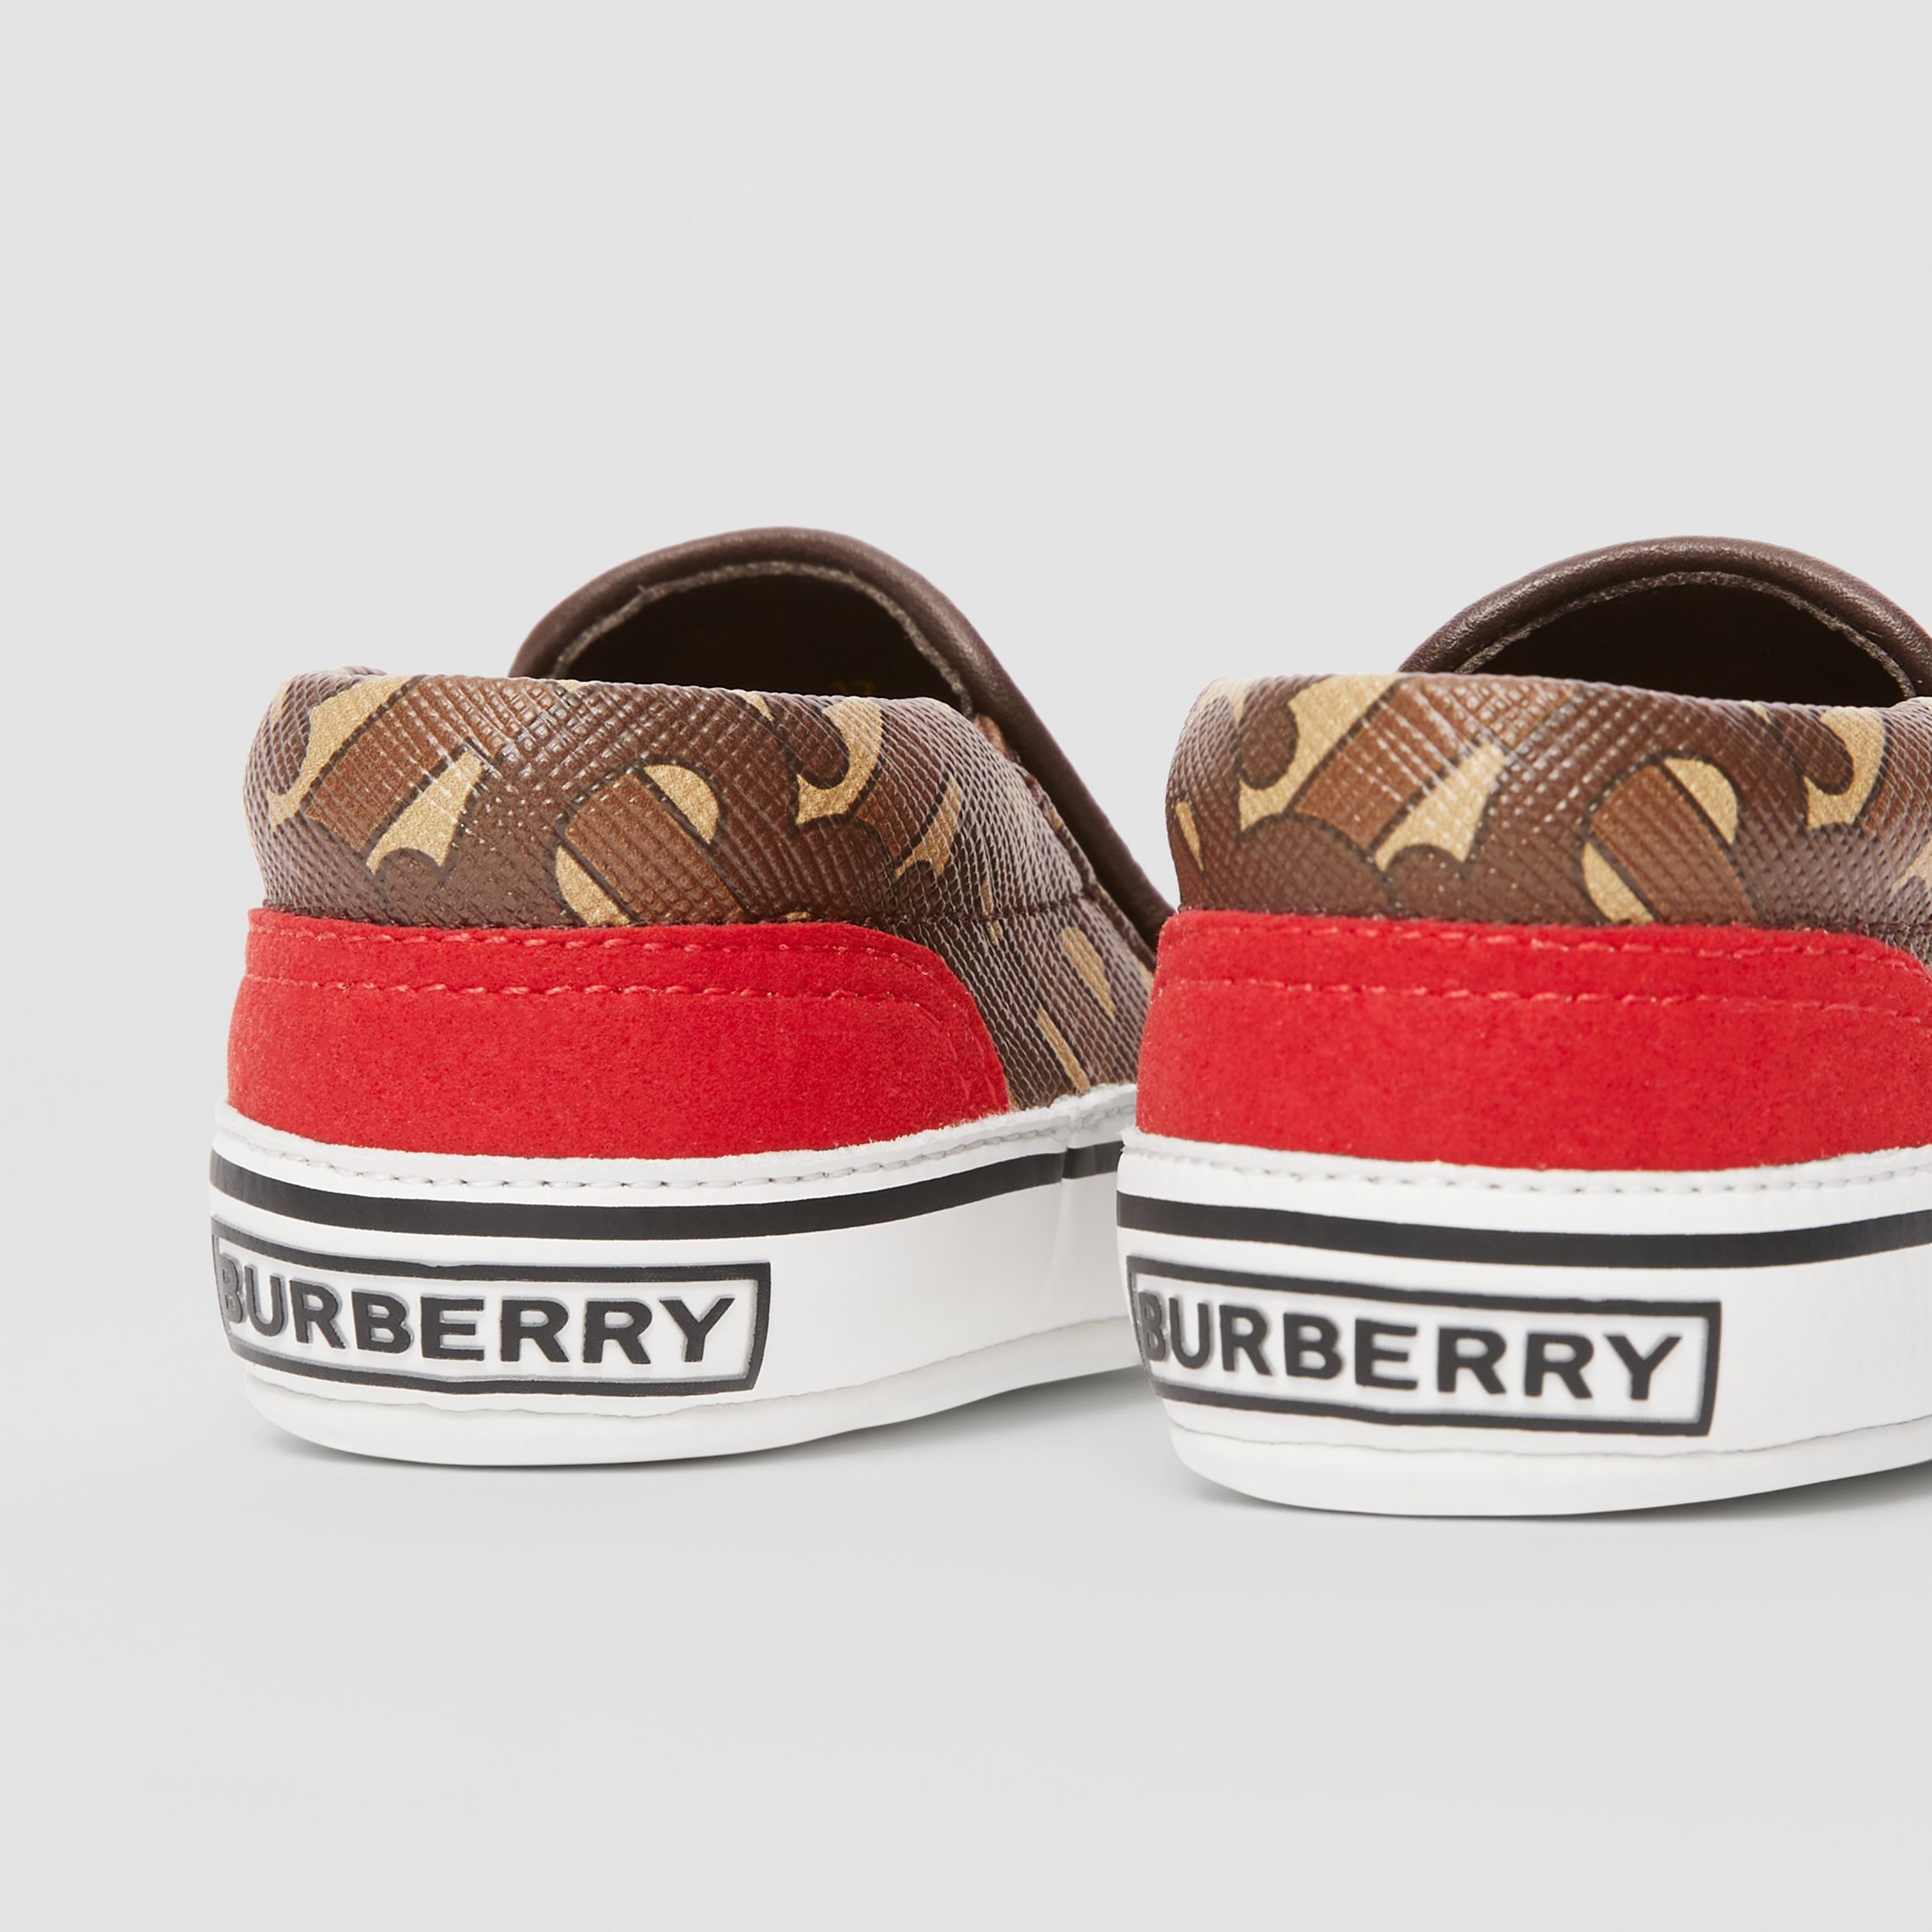 Monogram Print E-canvas Slip-on Shoes in Bridle Brown - Children | Burberry - 2